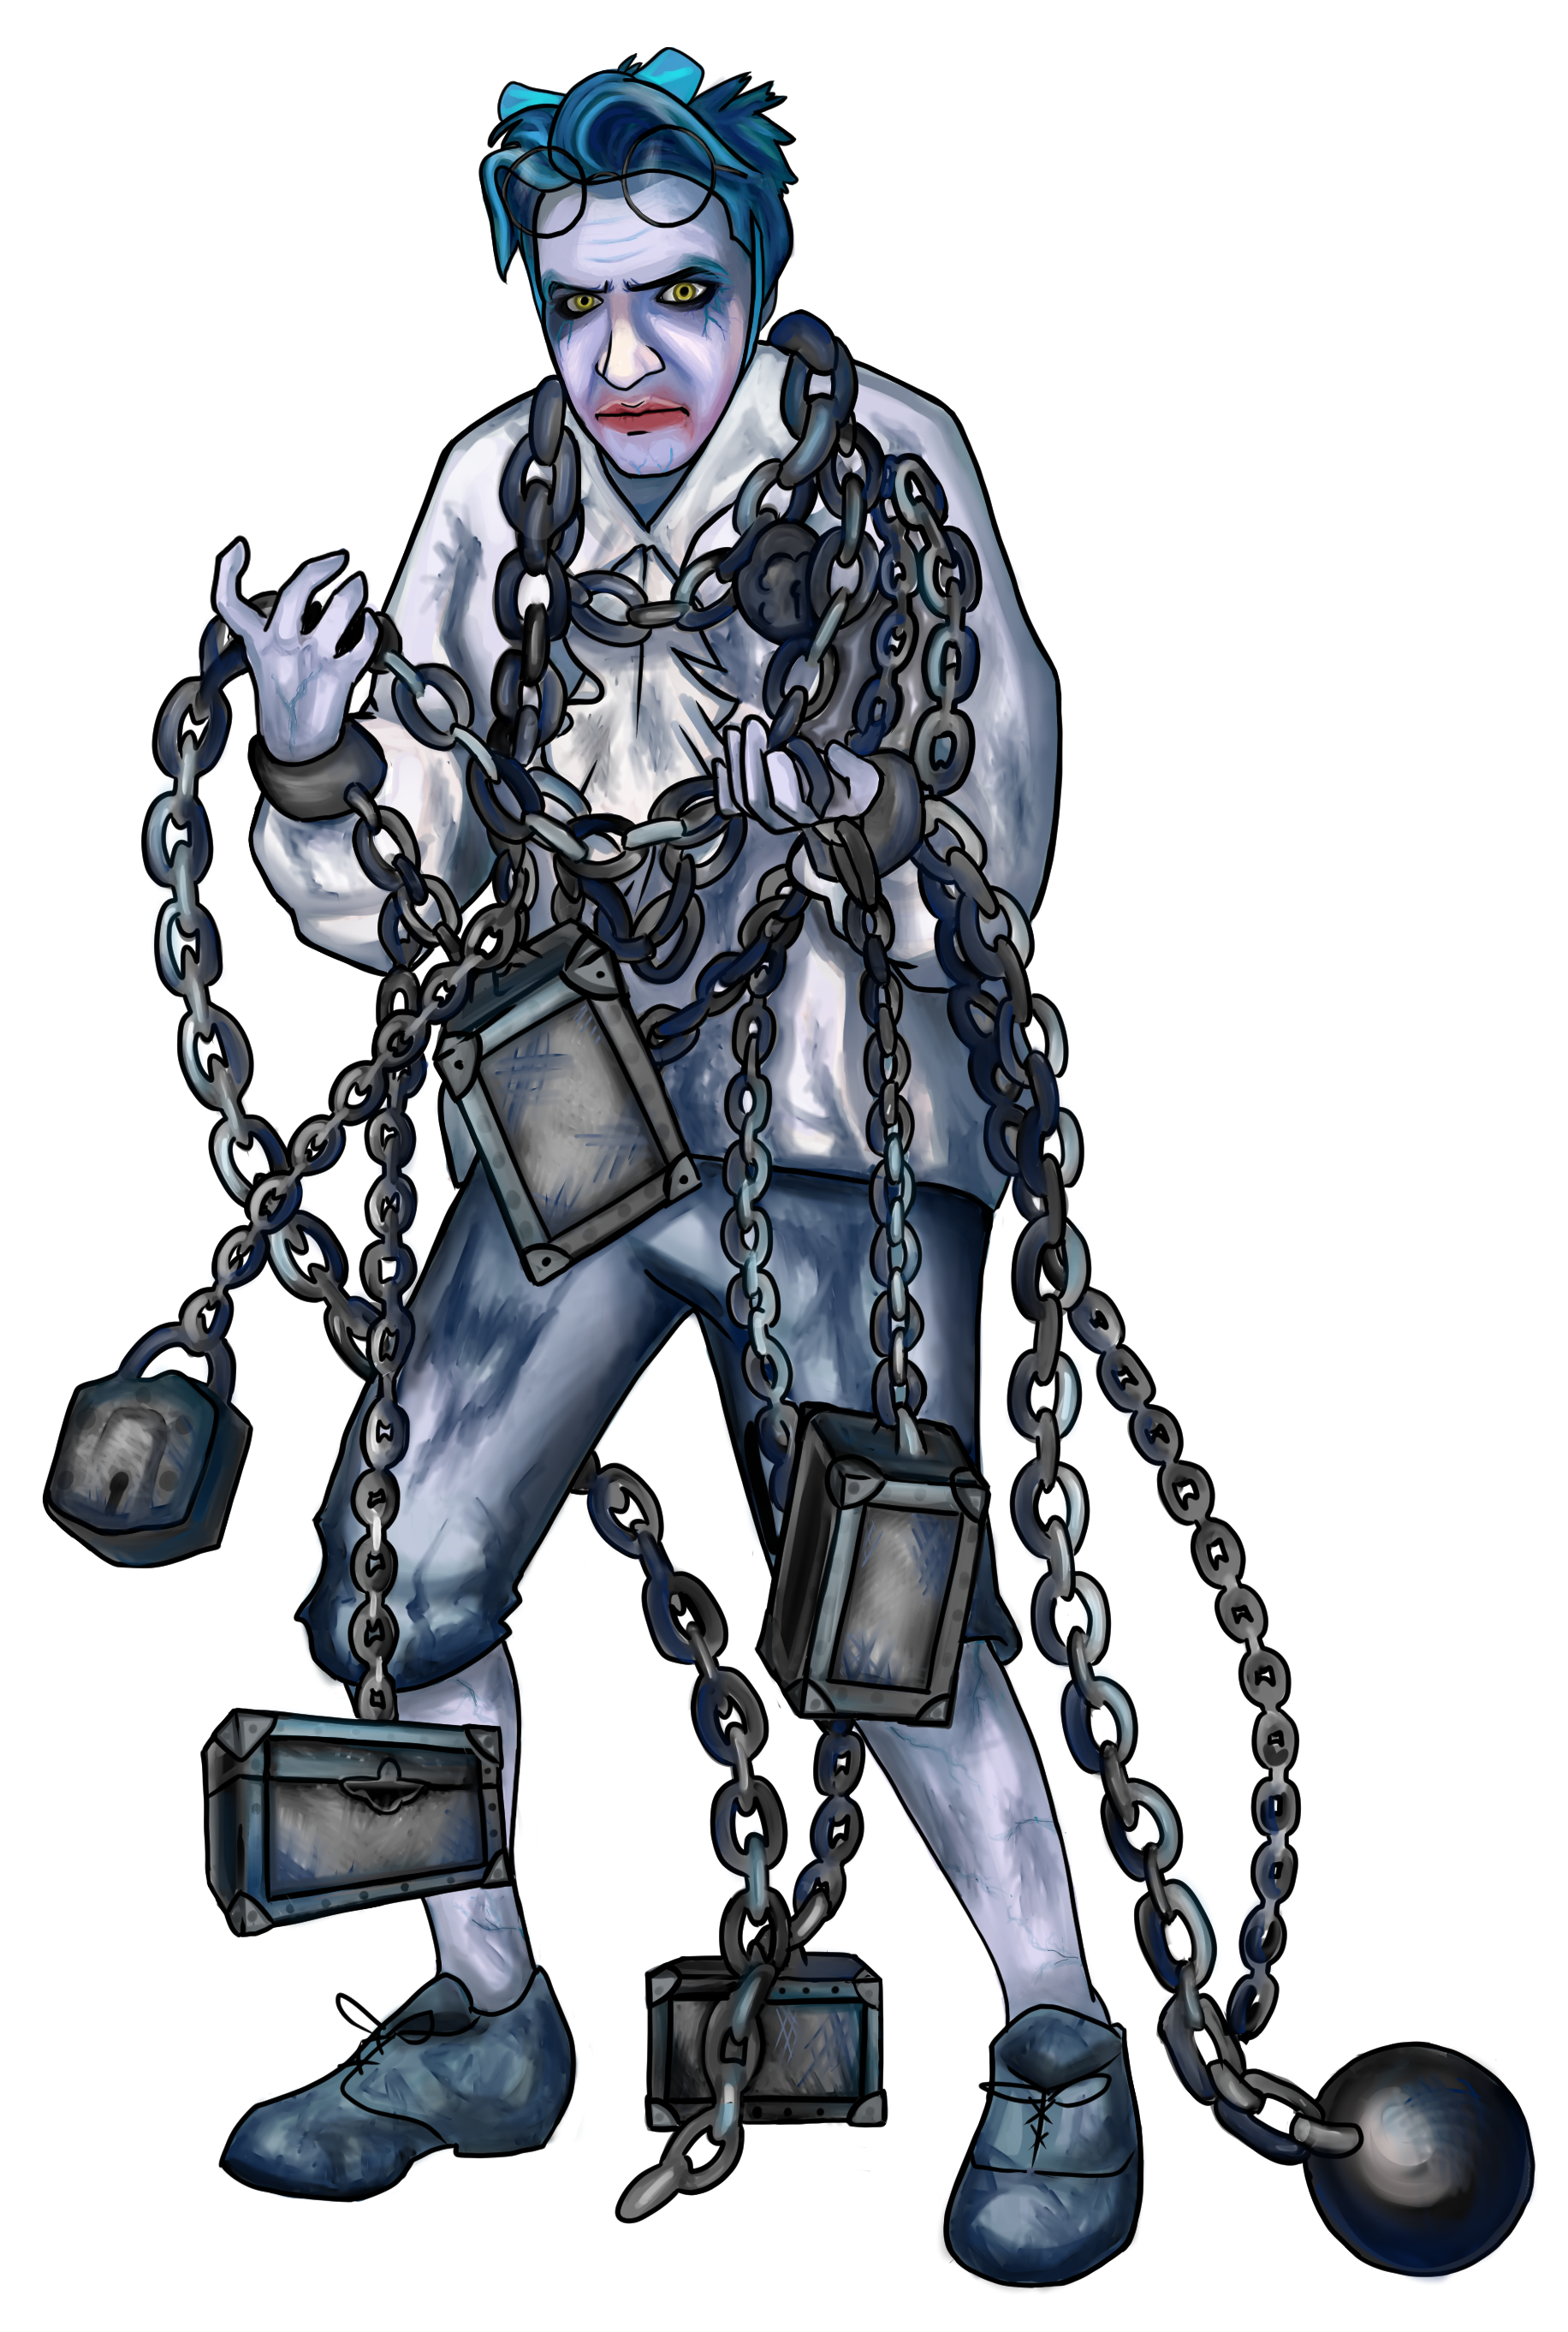 Jacob Marley by Hillary Chicoine-Chen